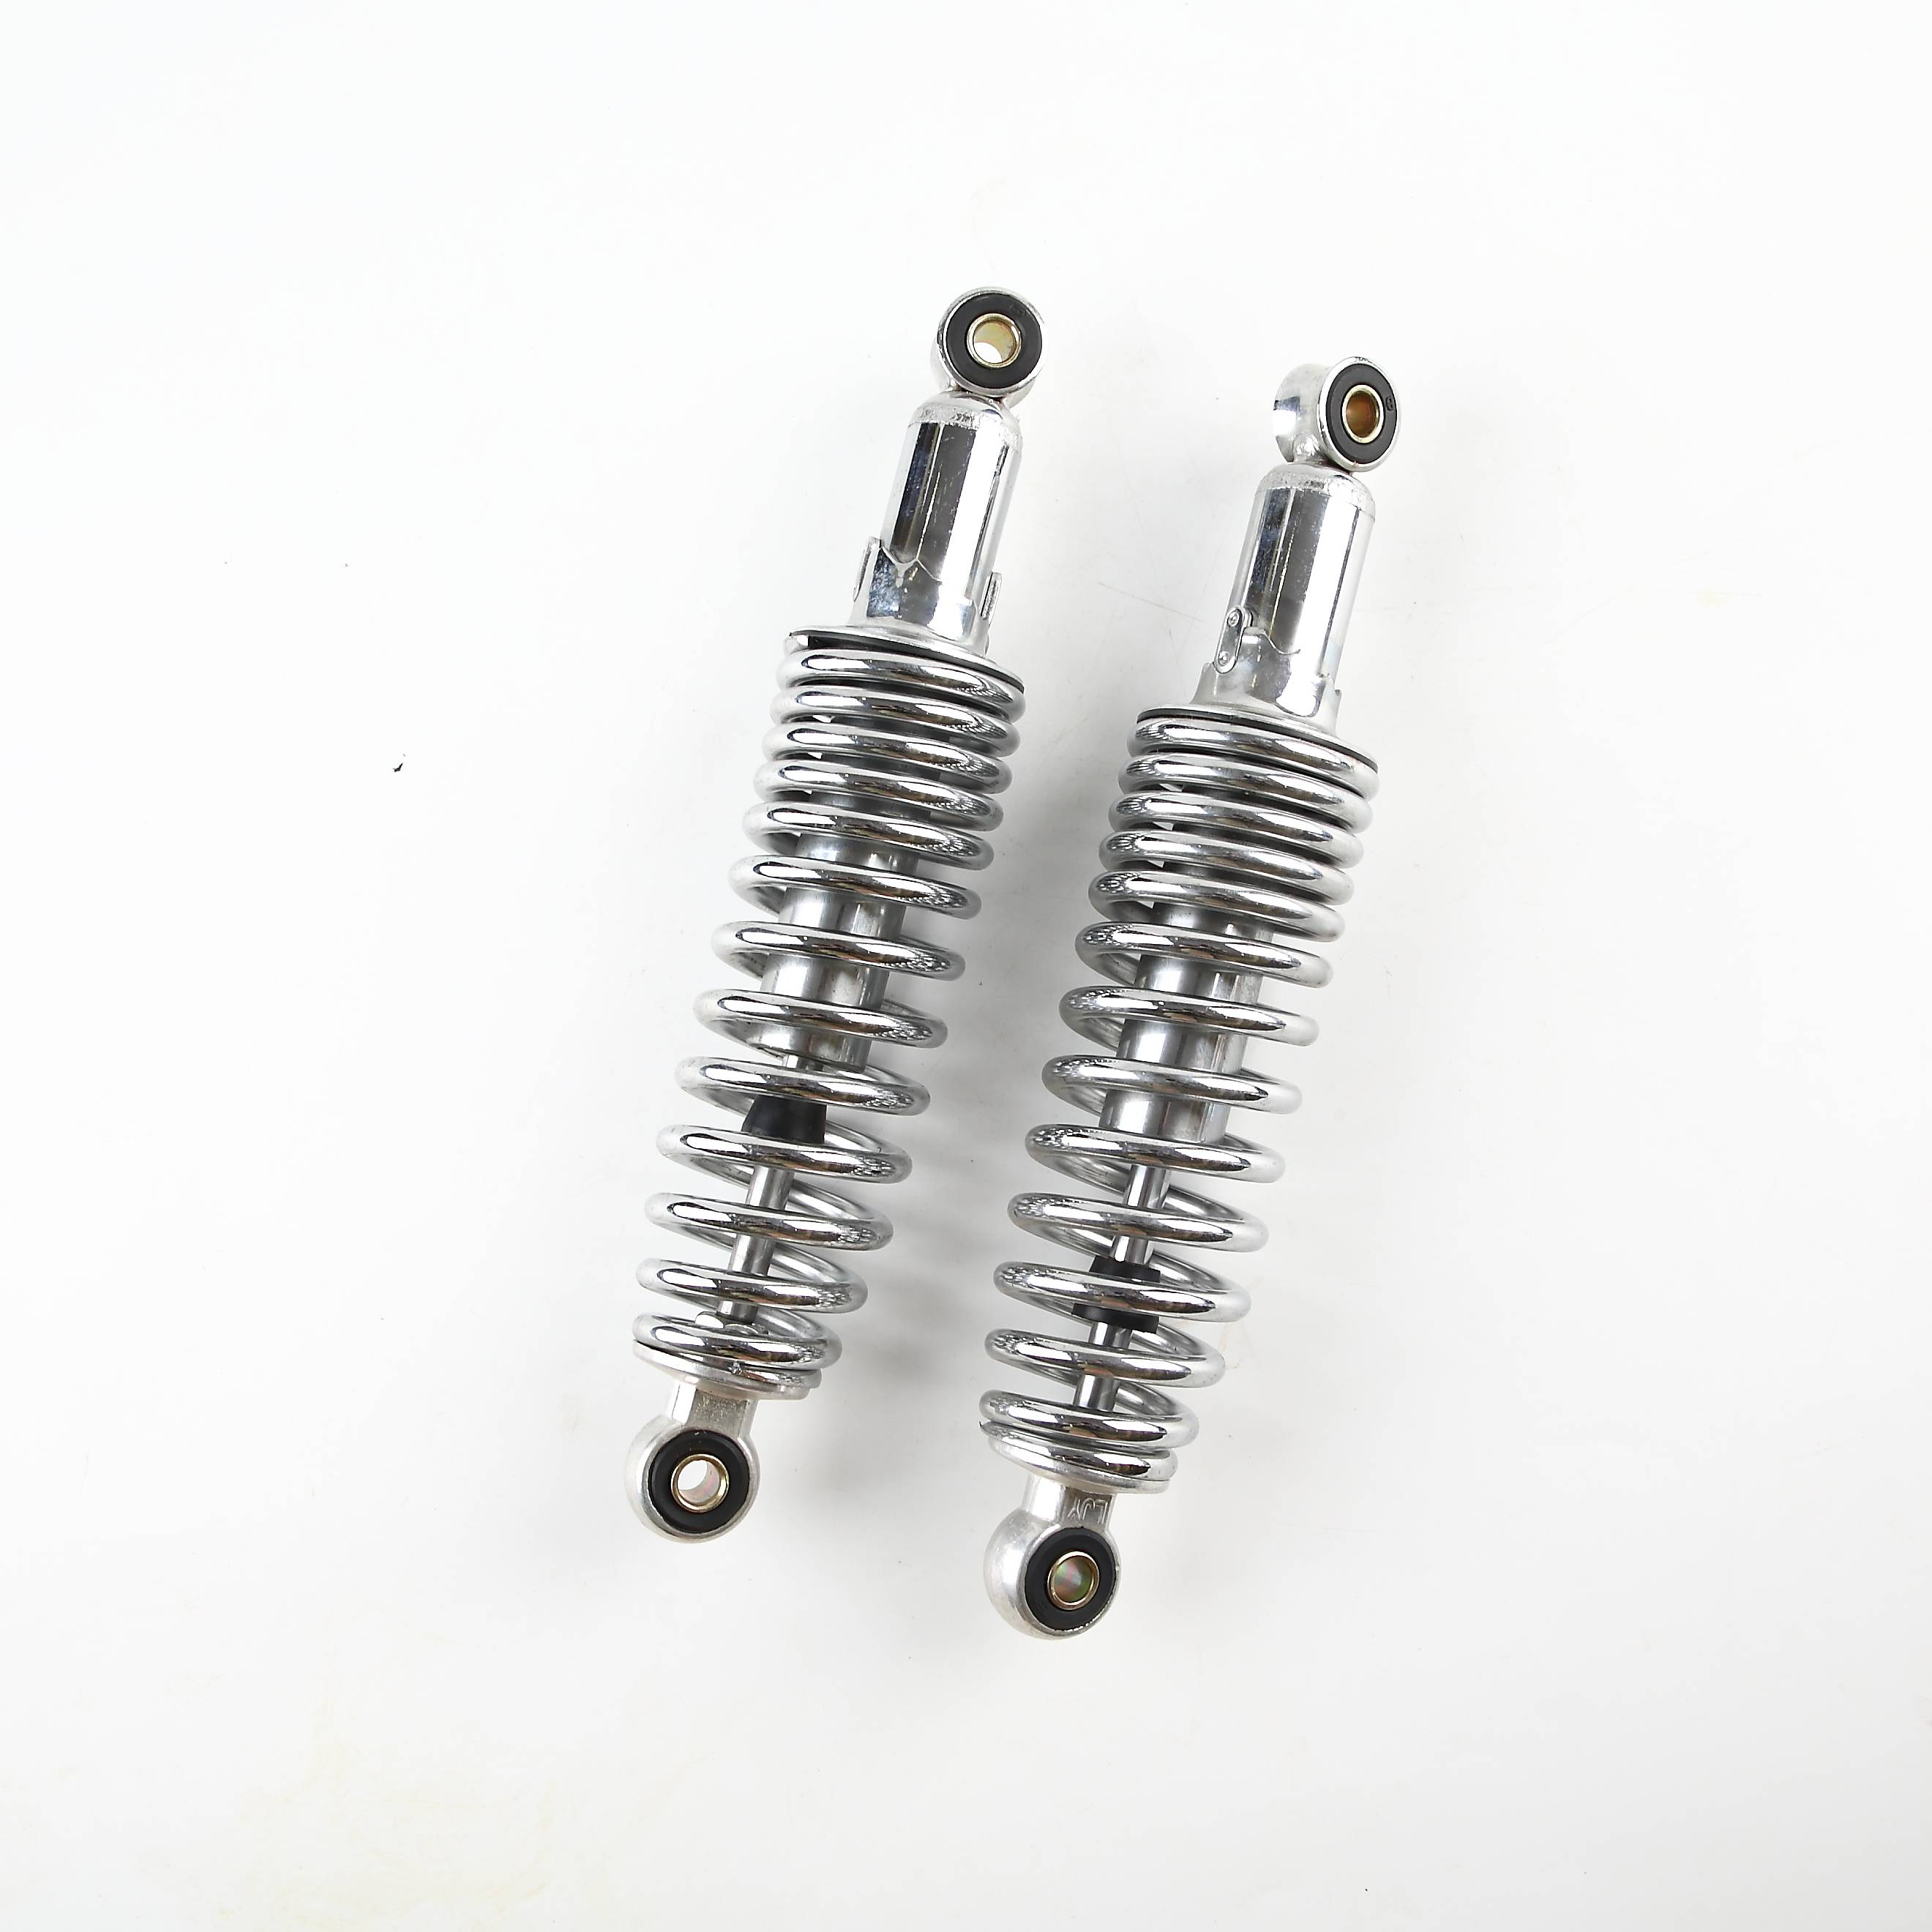 R150  Motorcycle shock absorber high-quality professional factory low prices